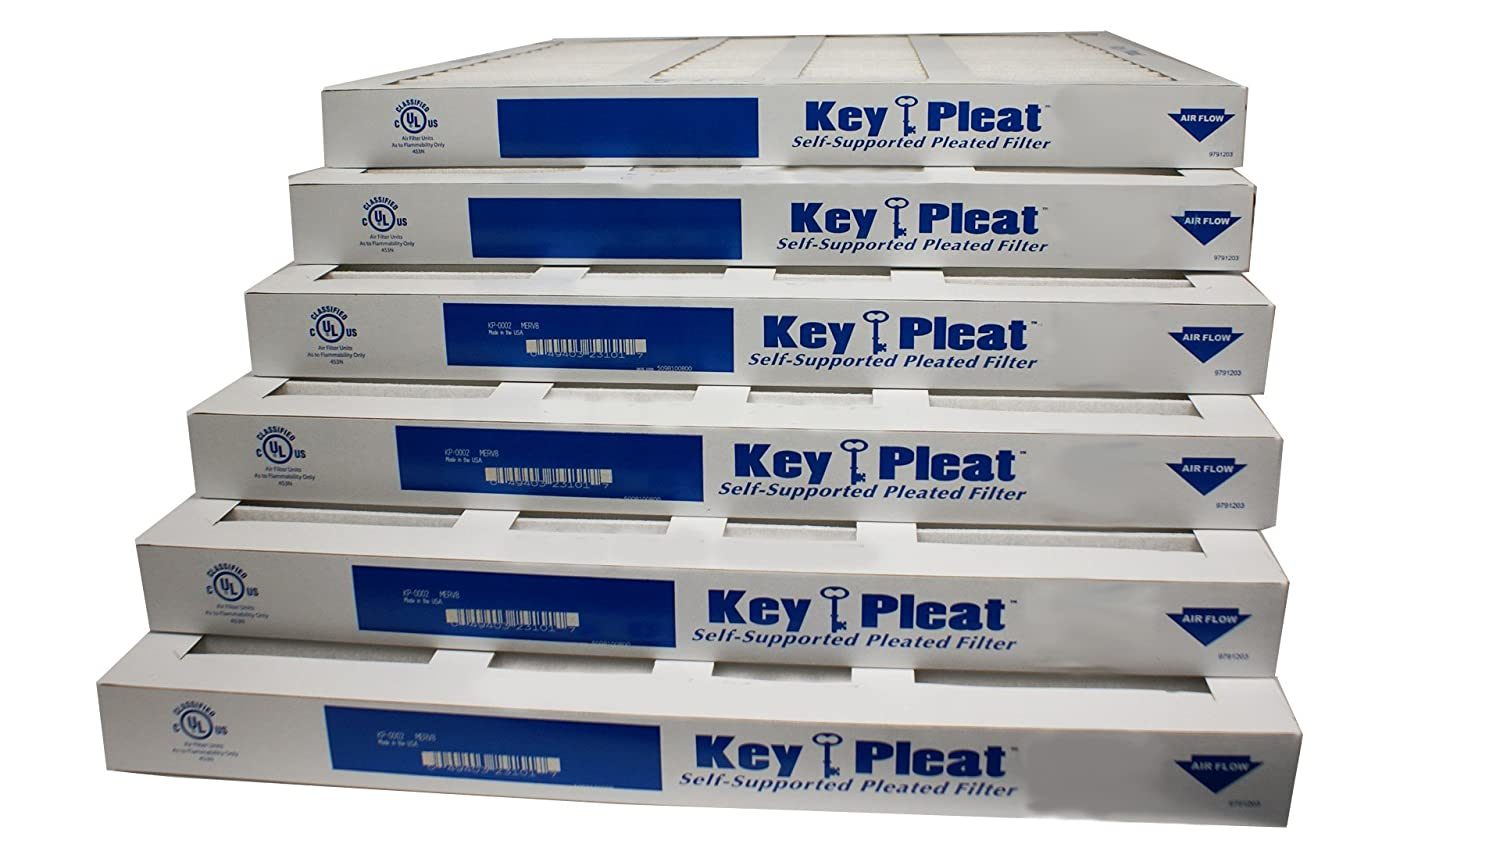 Sterling Seal KP 5251025031x6 Purolator Key Pleat Extended Surface Pleated Air Filter Mechanical MERV 8 16 W x 16 H x 1 D Pack of 6